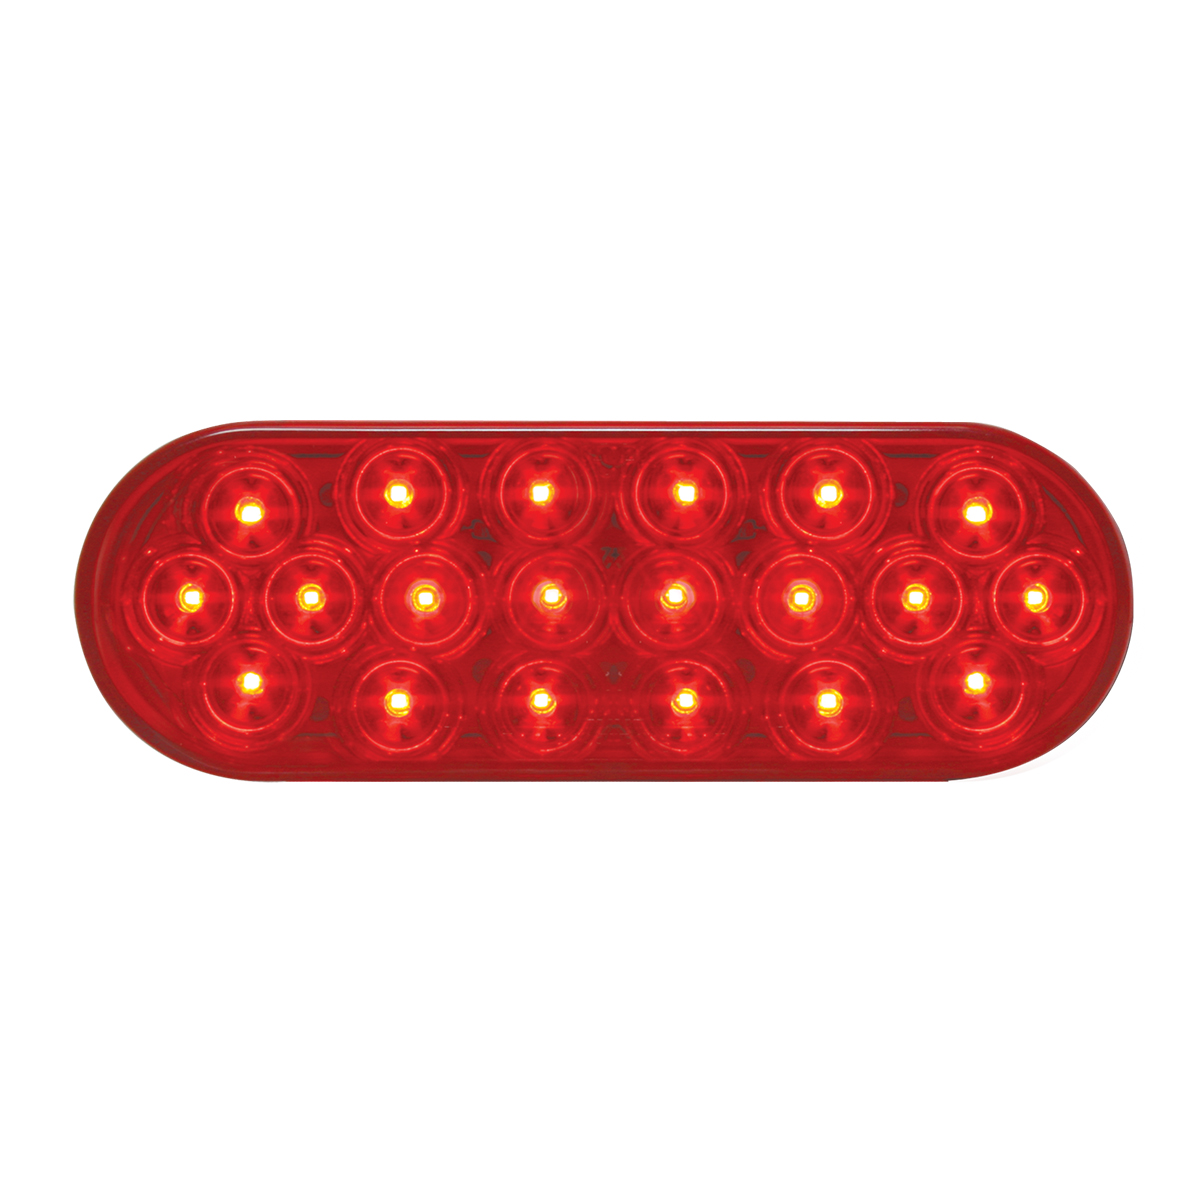 87721 Oval Fleet LED Light in Red/Red